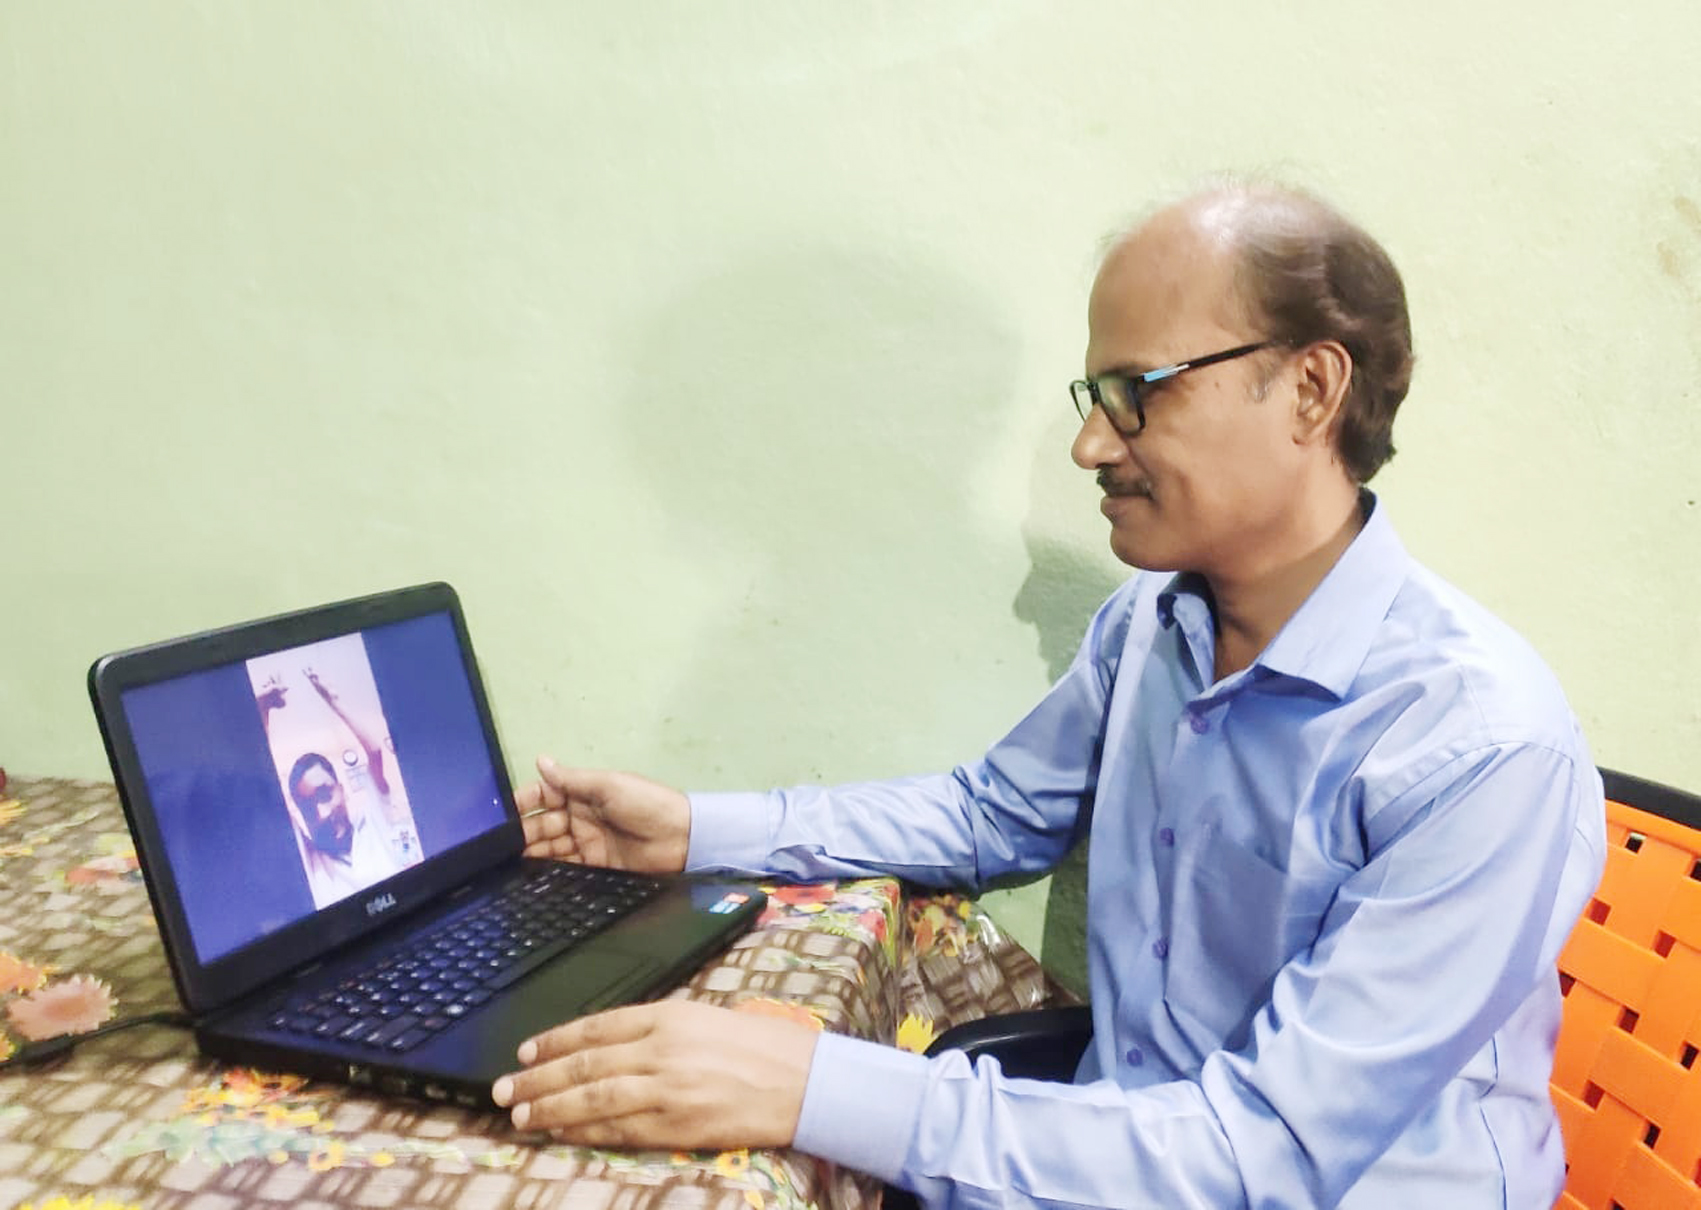 Physiotherapist, Dr. Manoj Singh interact with Avinash Kumar, a Sudamdih resident, in Dhanbad during the online training session from his home in Jharia, Dhanbad today